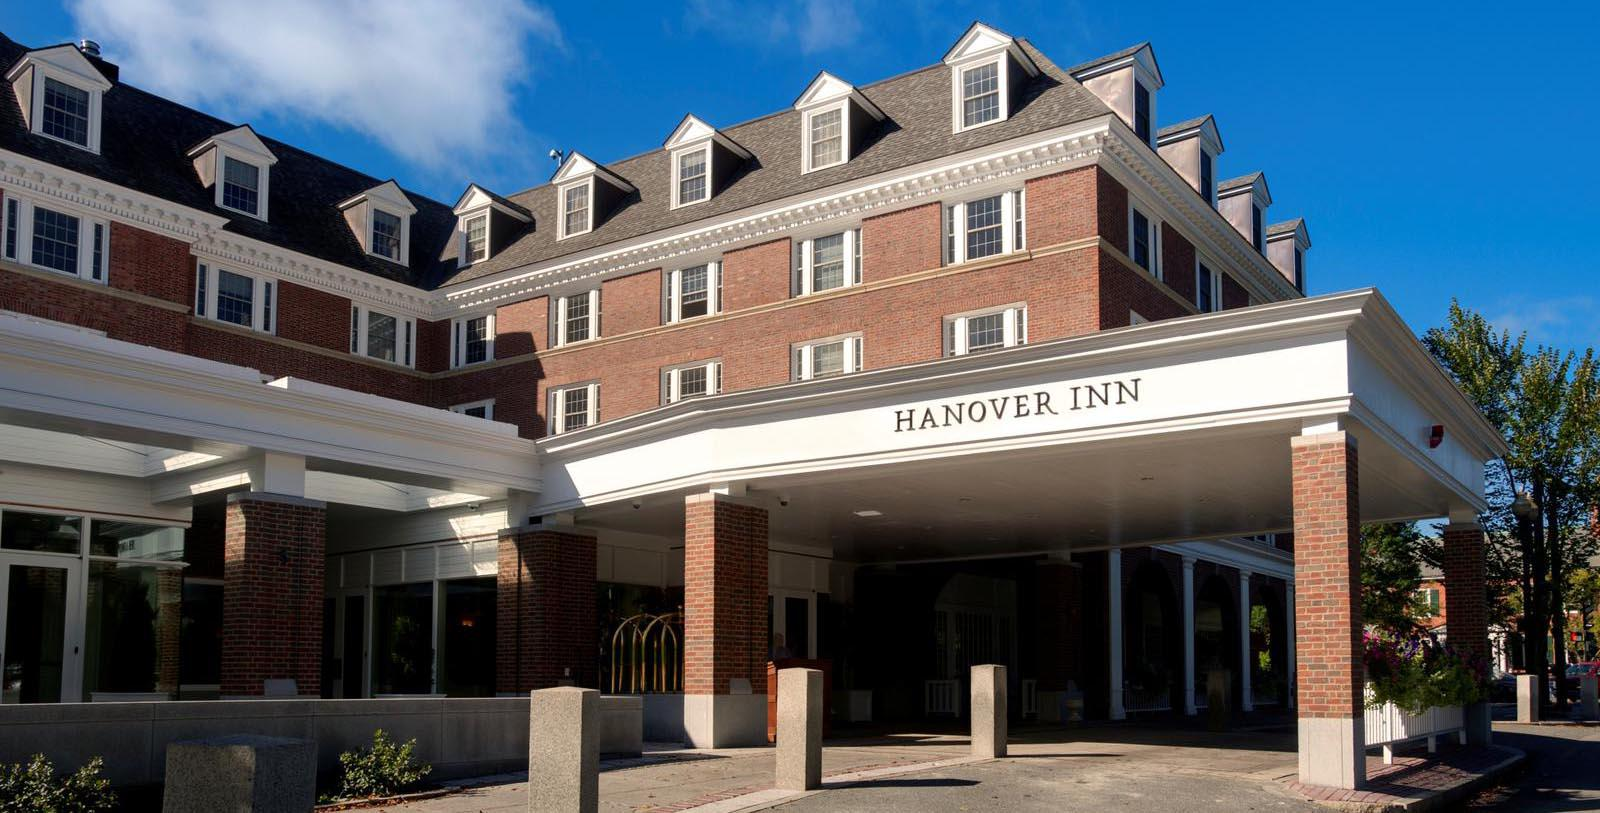 Image of hotel exterior Hanover Inn Dartmouth, 1780, Member of Historic Hotels of America, in Hanover, New Hampshire, Discover